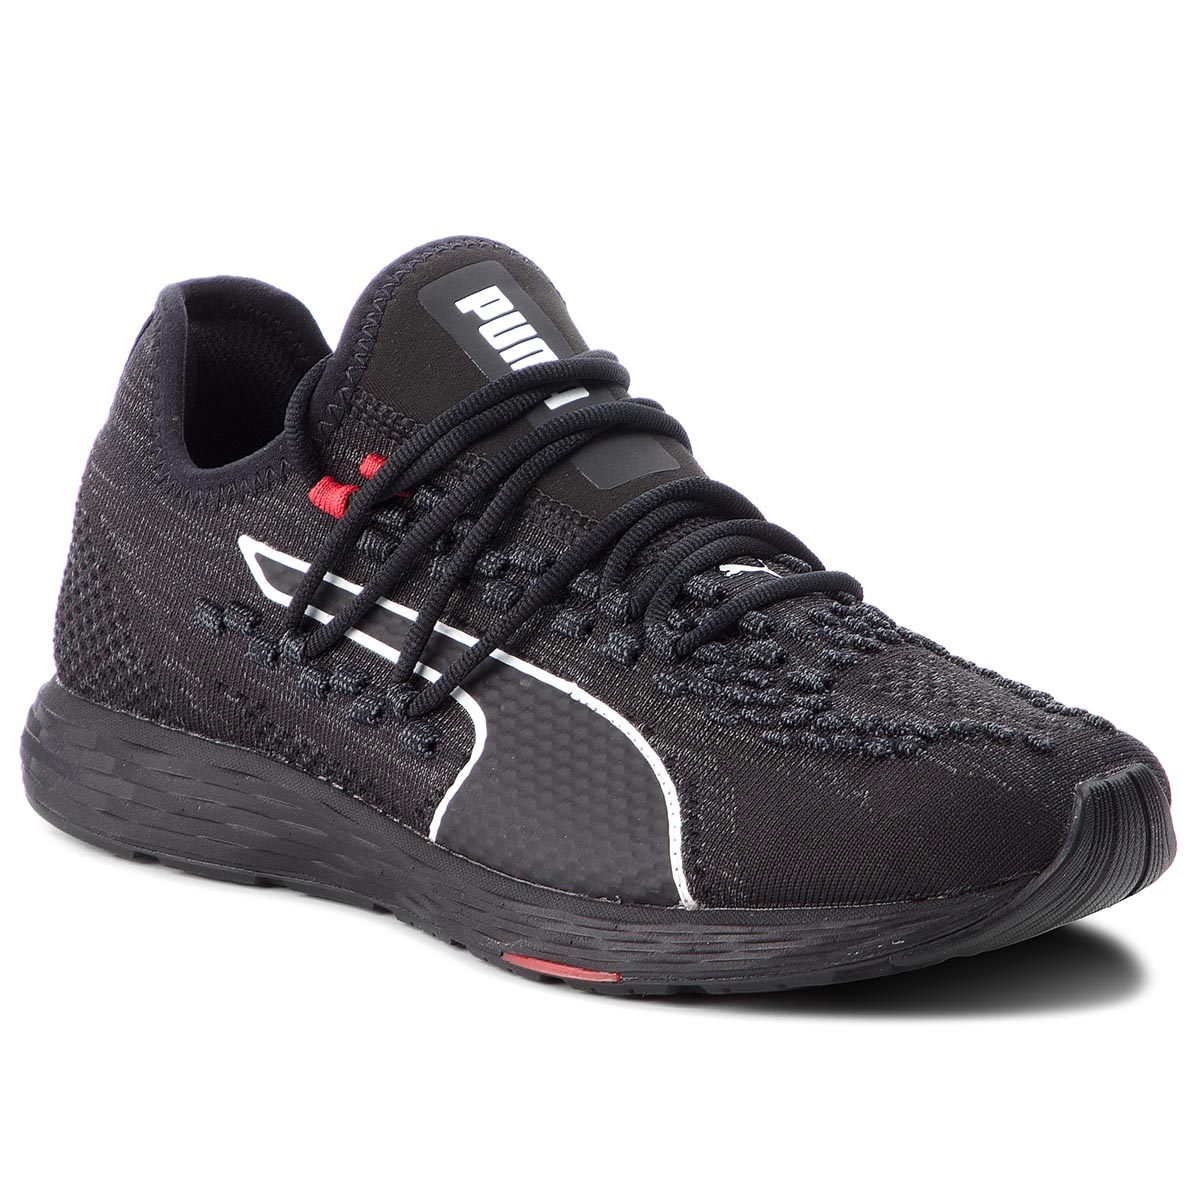 Buty PUMA – Speed Racer 191062 01 Black/Asphalt/White